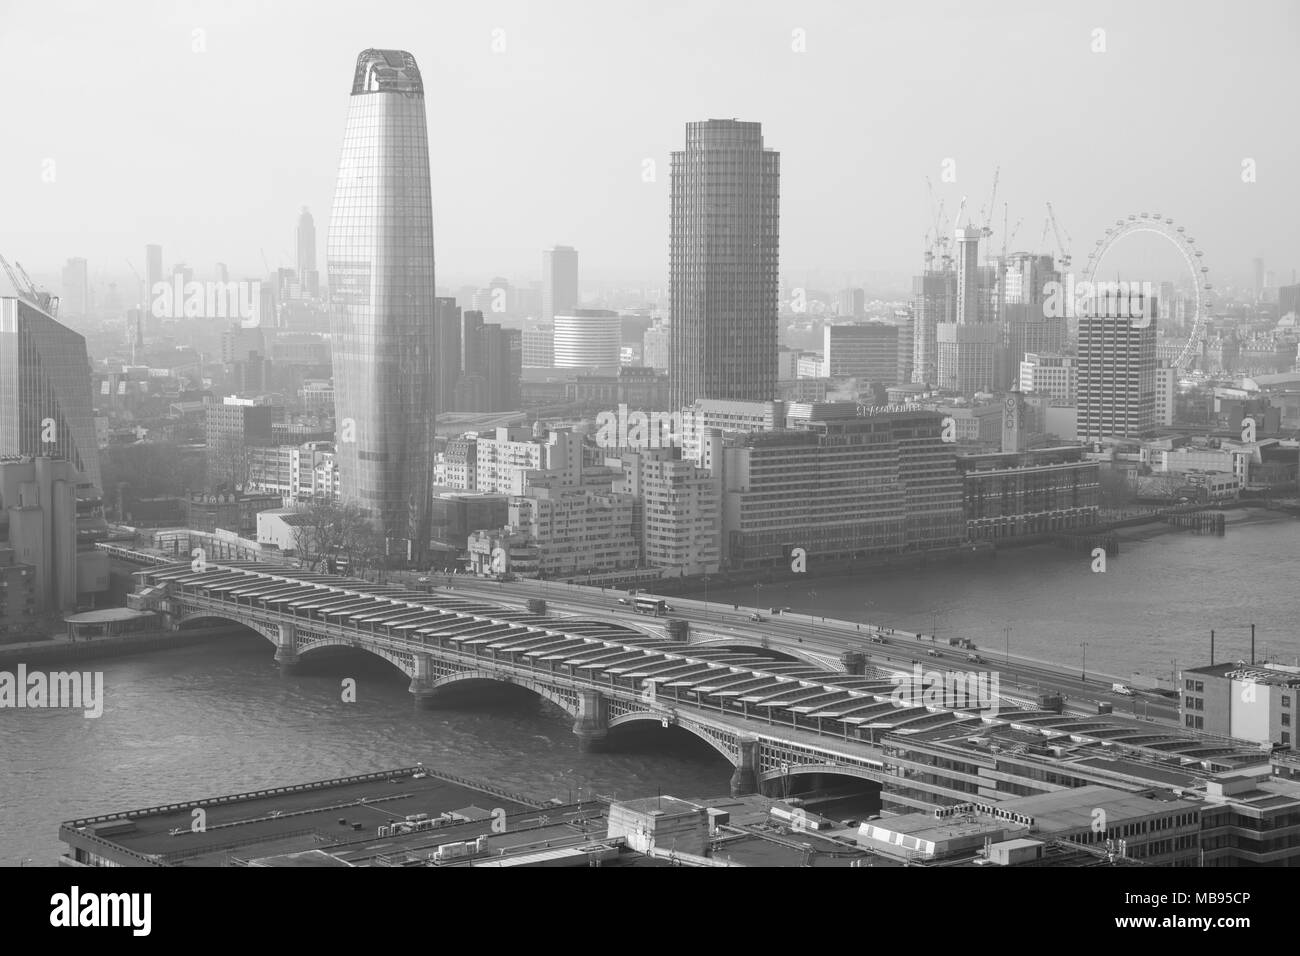 One Blackfrairs and surrounding building, as seen from St. Paul's Cathedral. - Stock Image